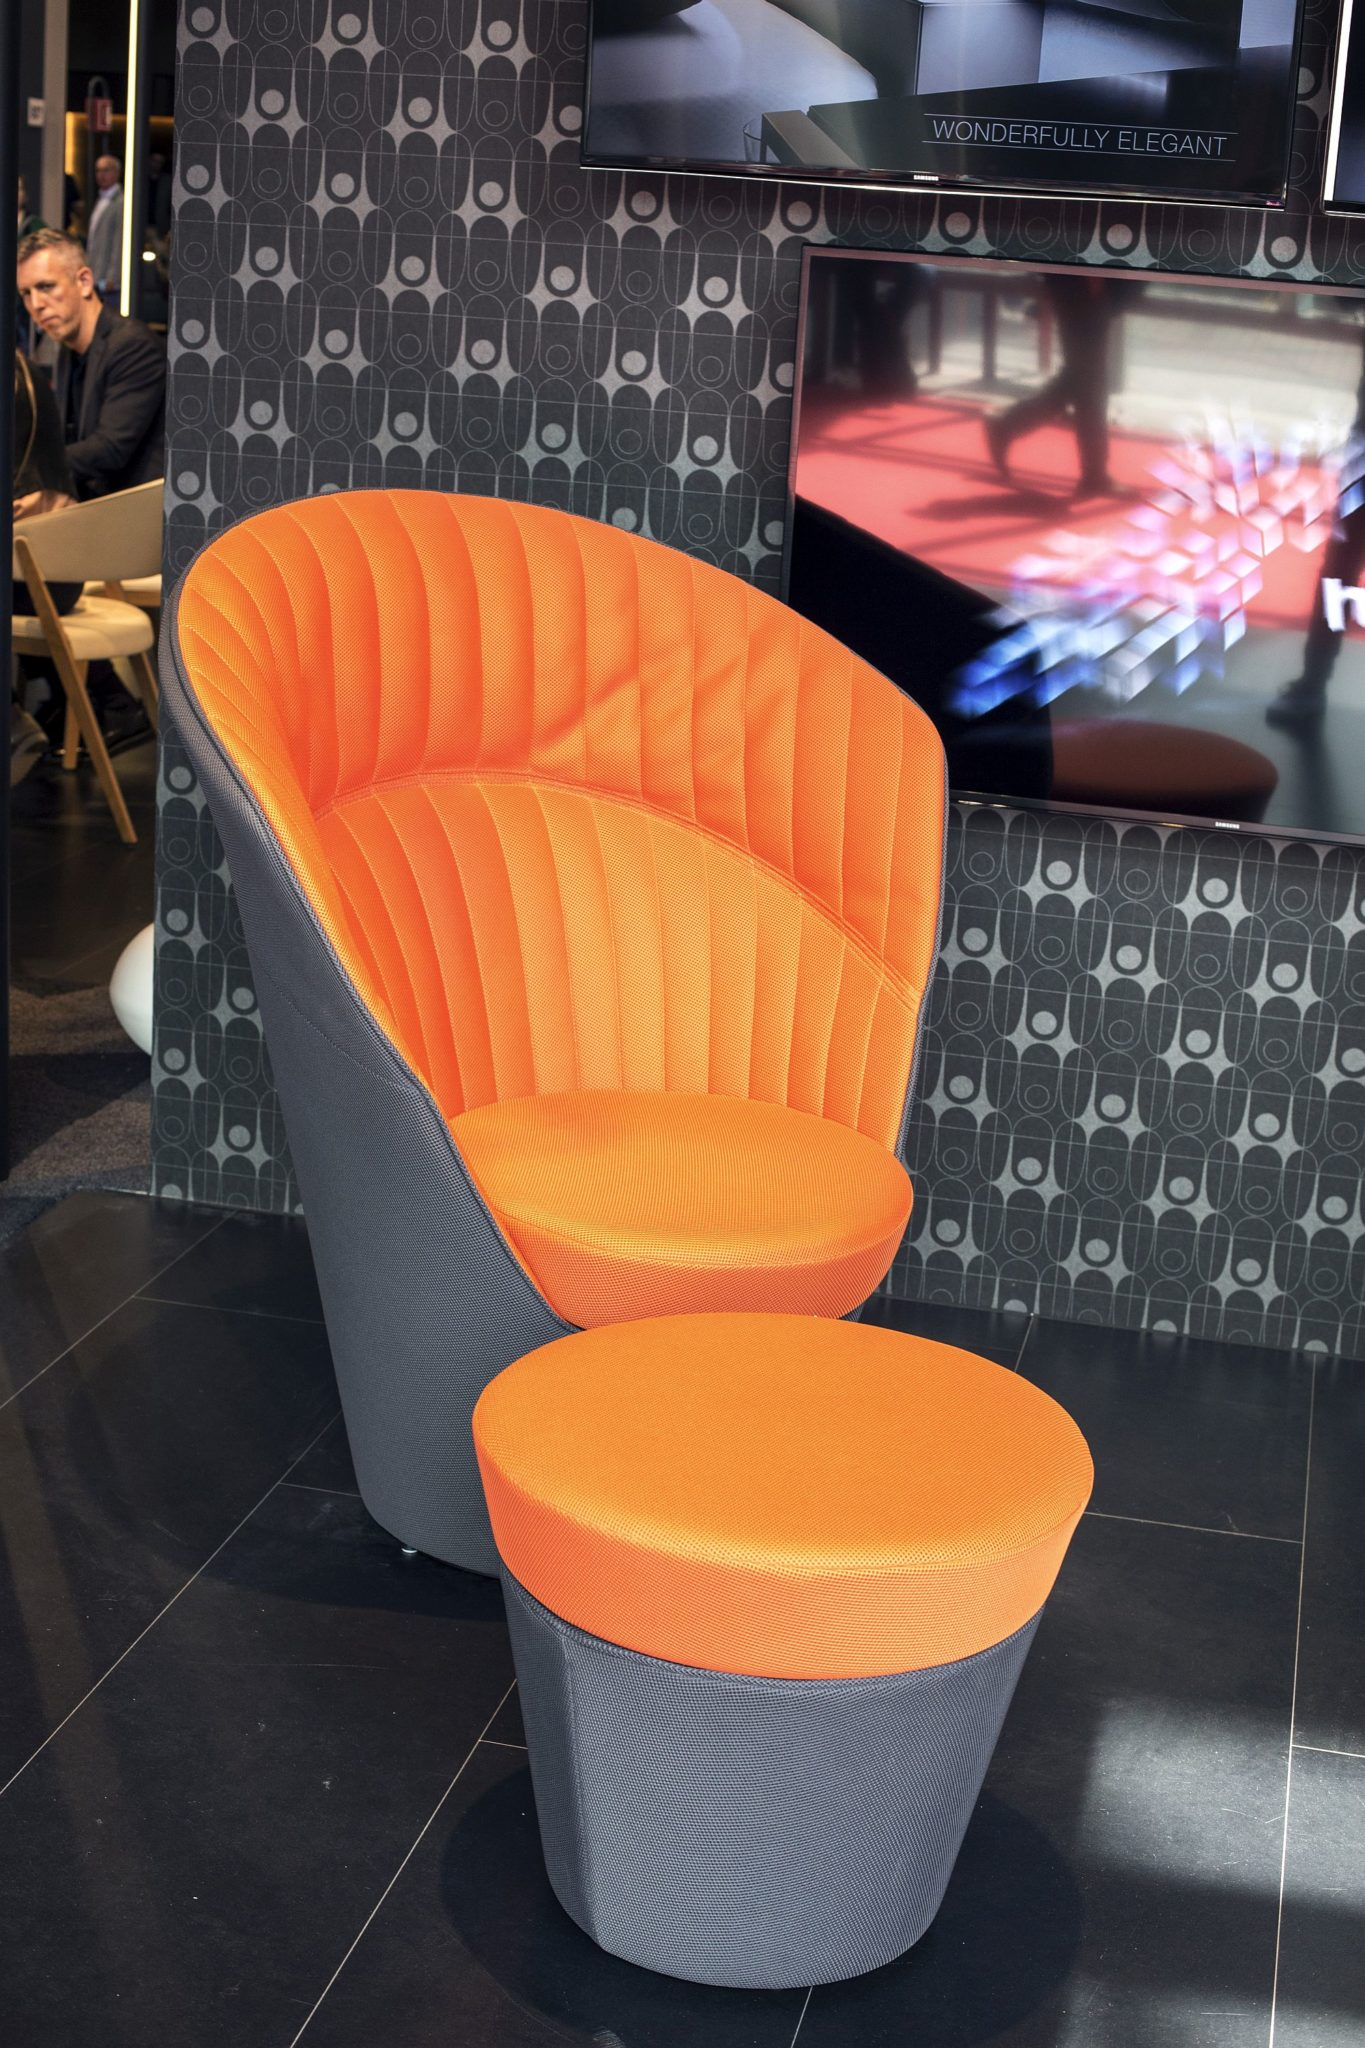 Comfortable high back chair from Huelsta in gray and orange